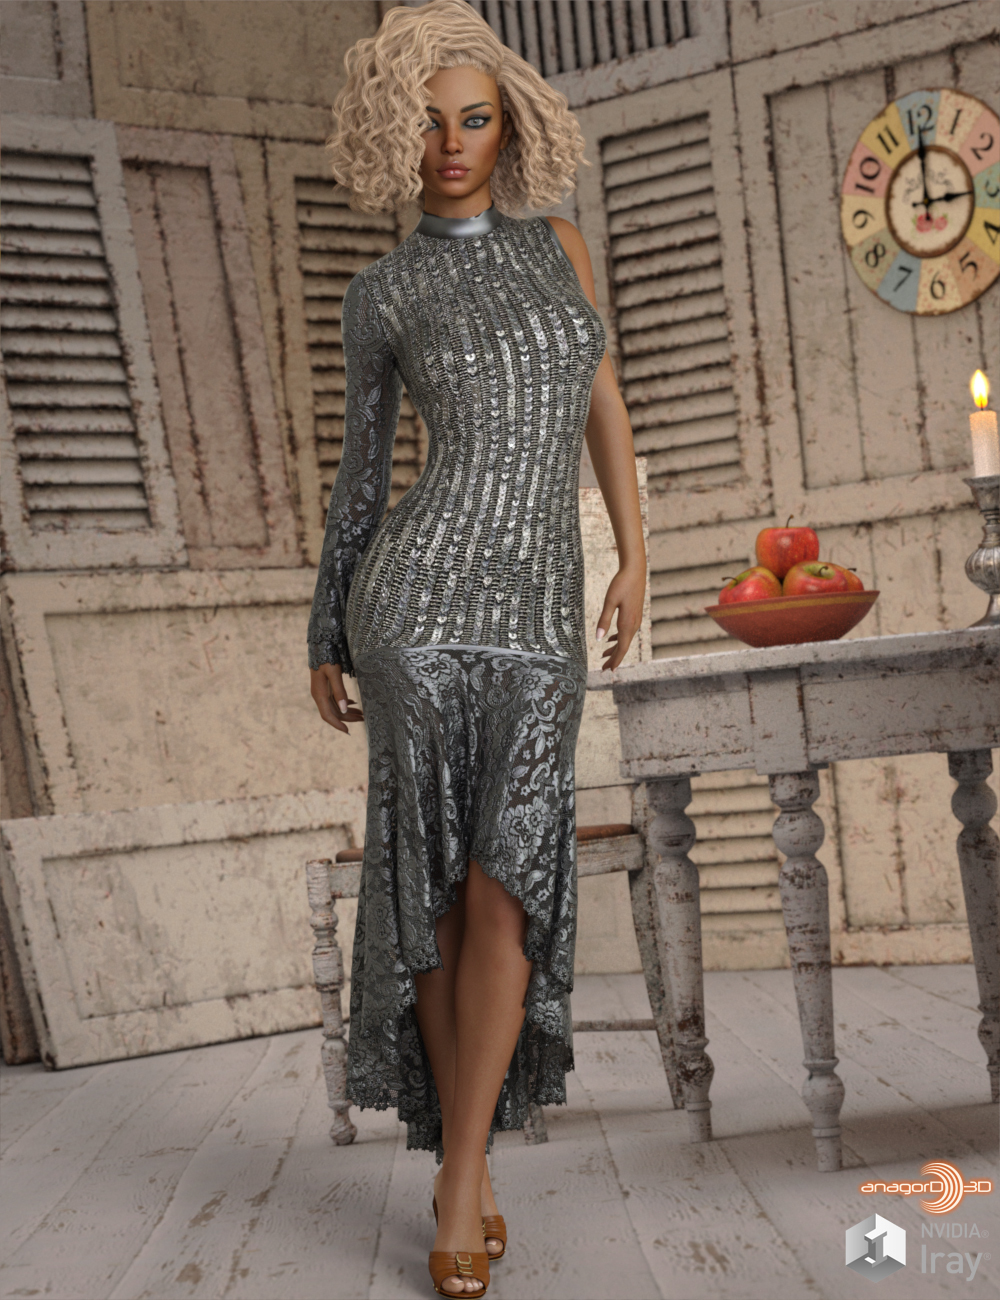 VERSUS - Sardonic dForce dress for G8F by Anagord